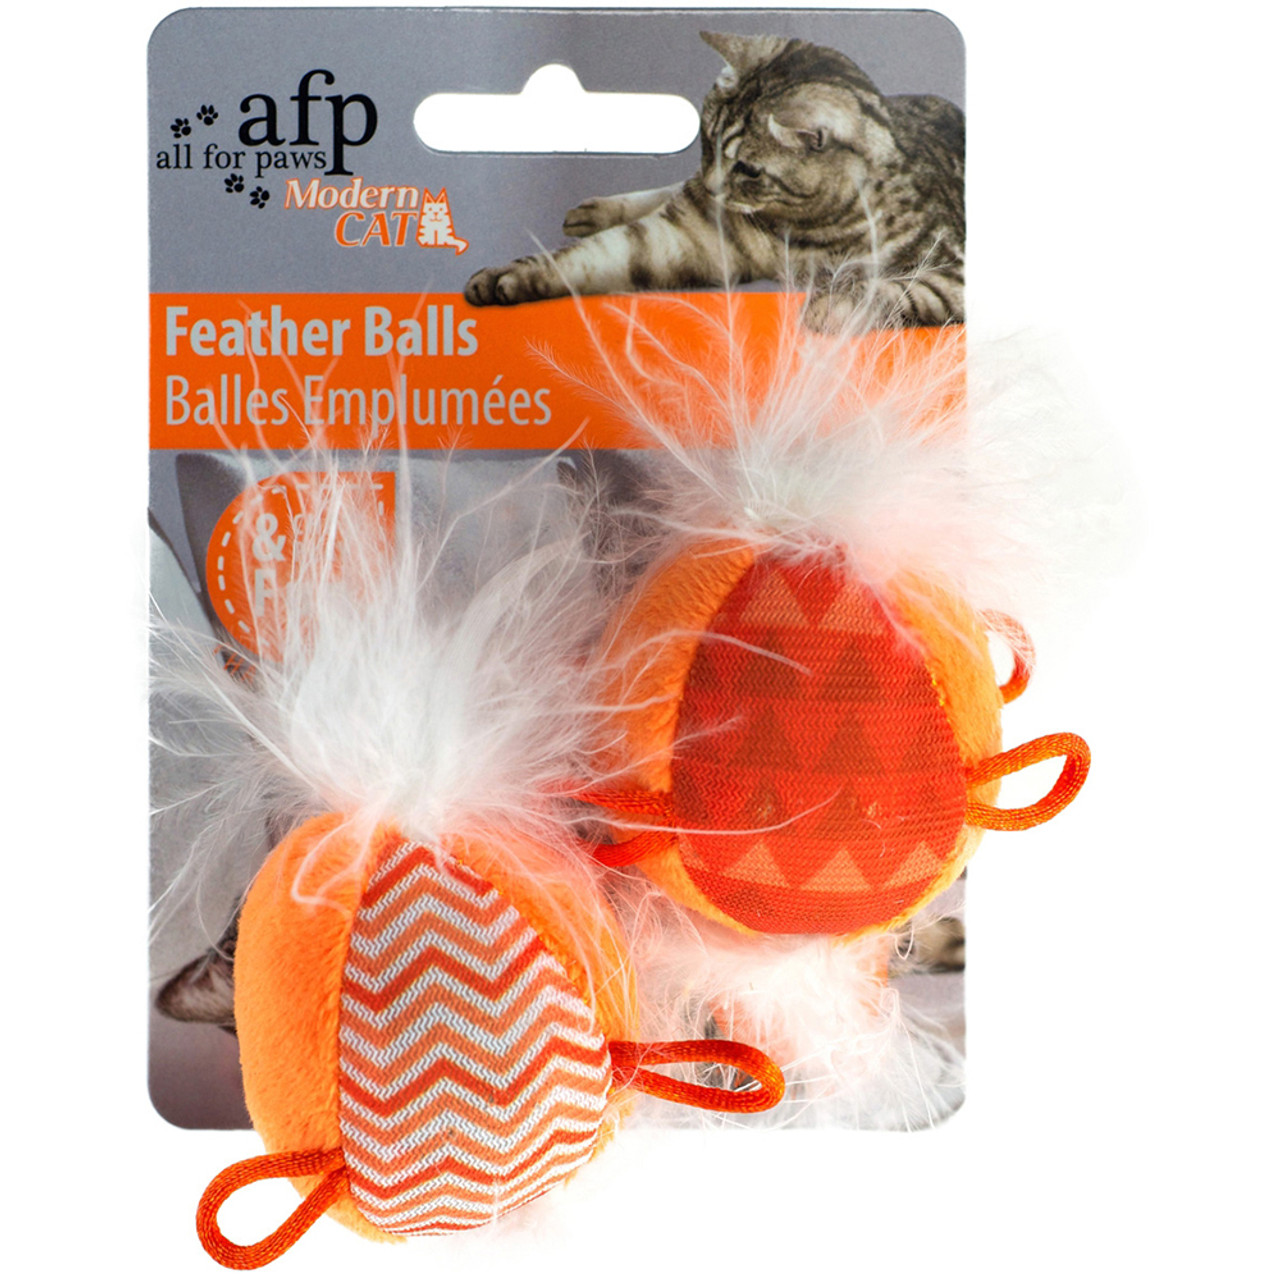 All For Paws Modern Feather Balls Cat Toy